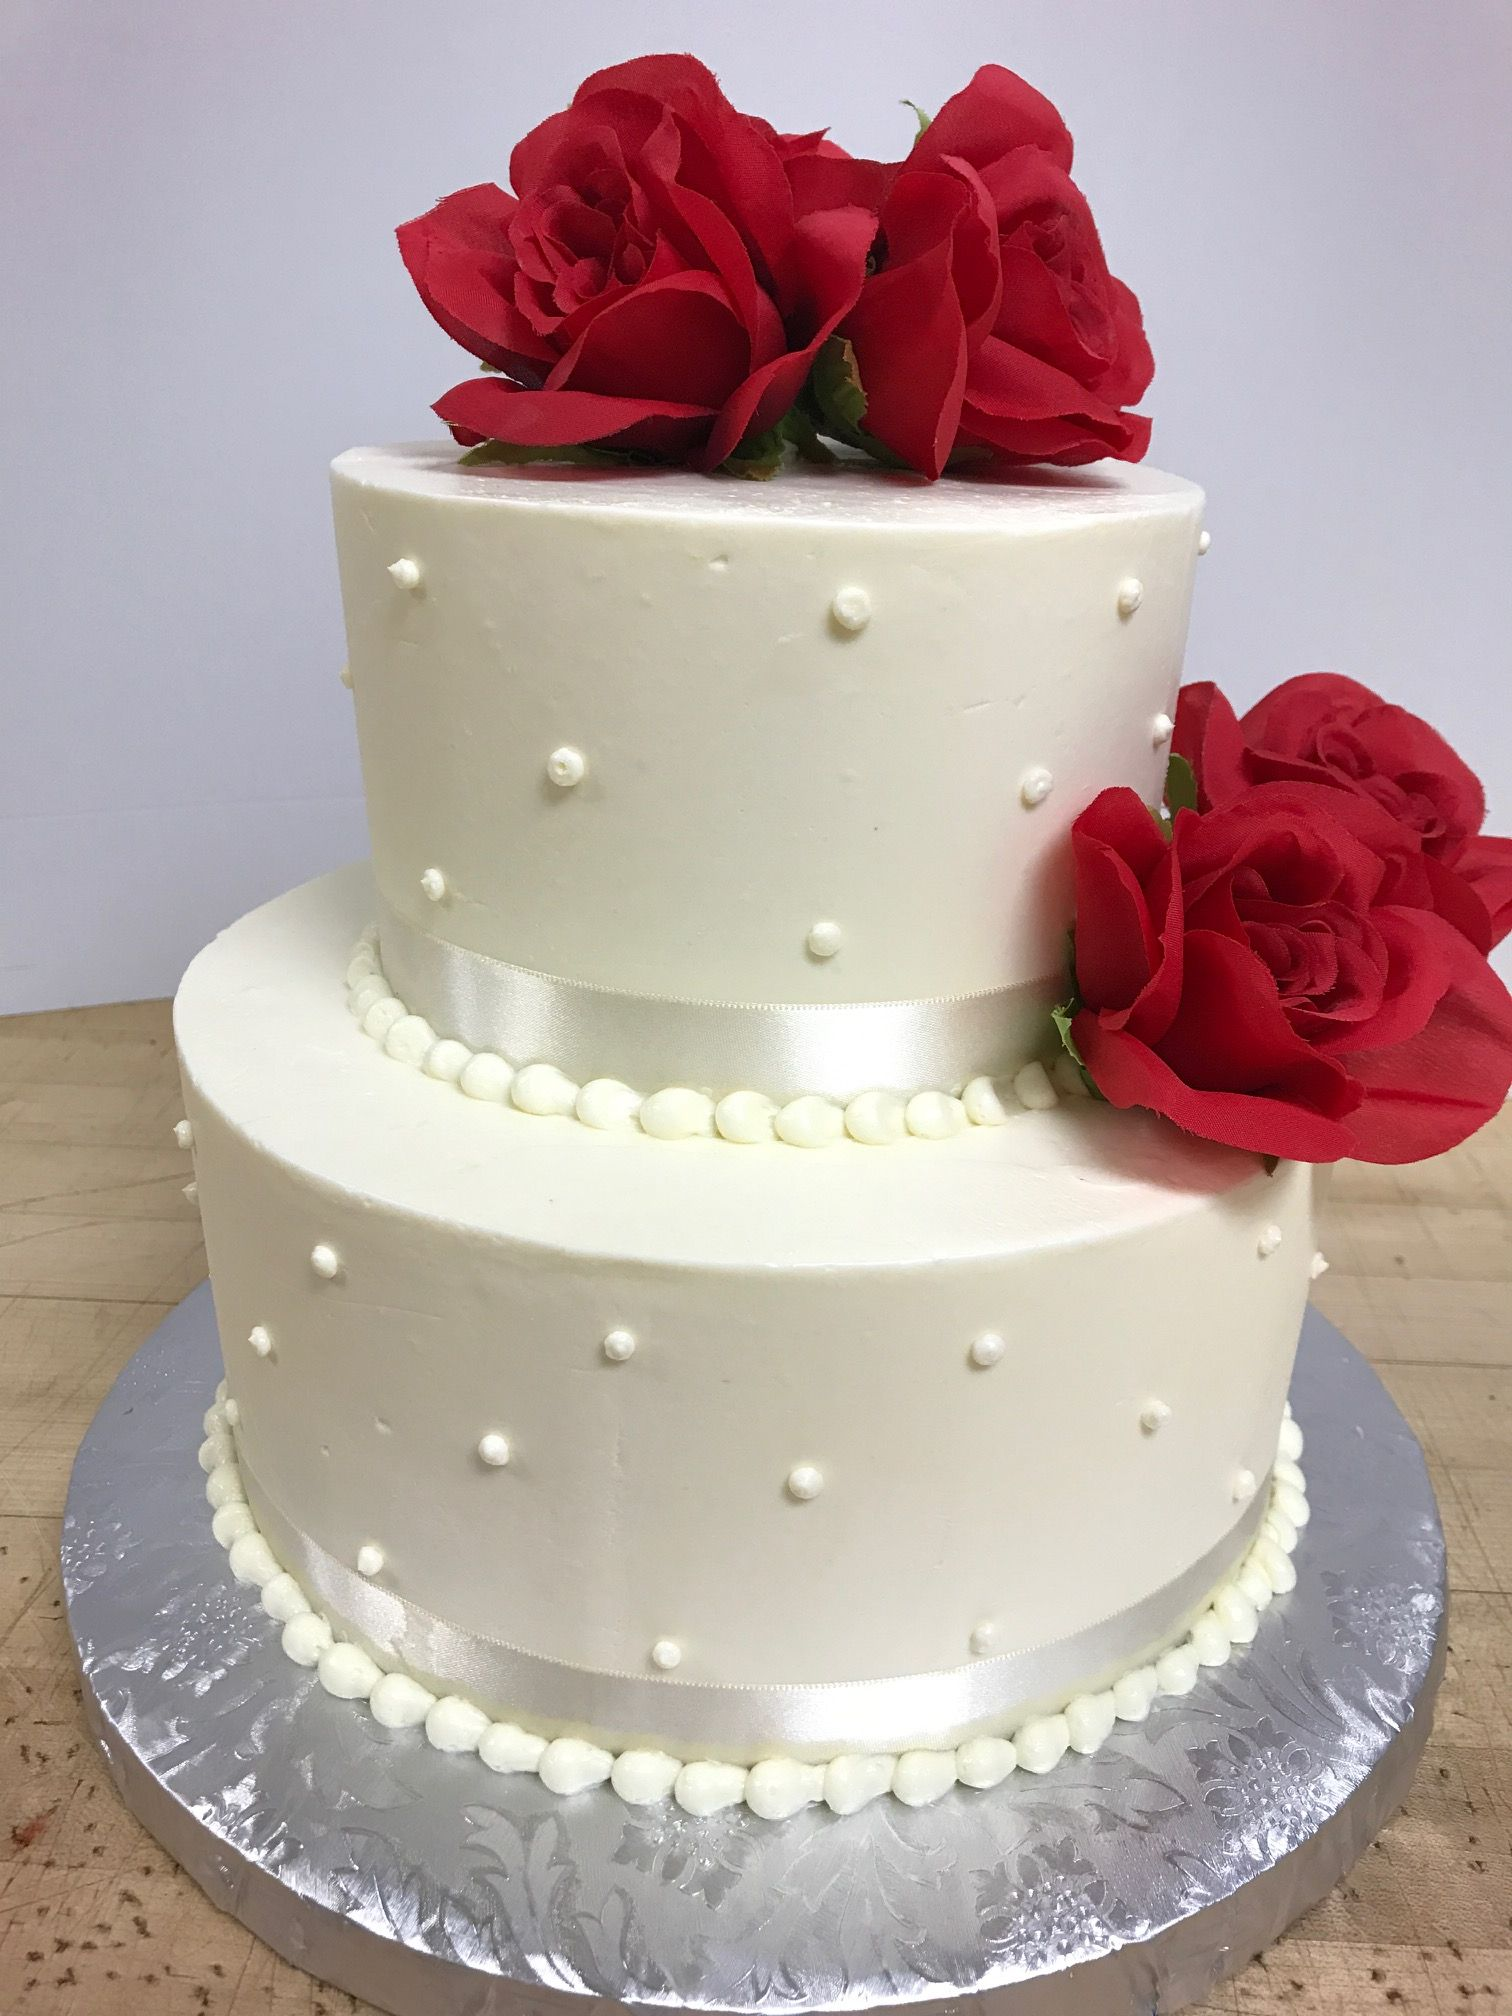 2 Tiered White Cake With Pearl Decoration White Ribbon And Red